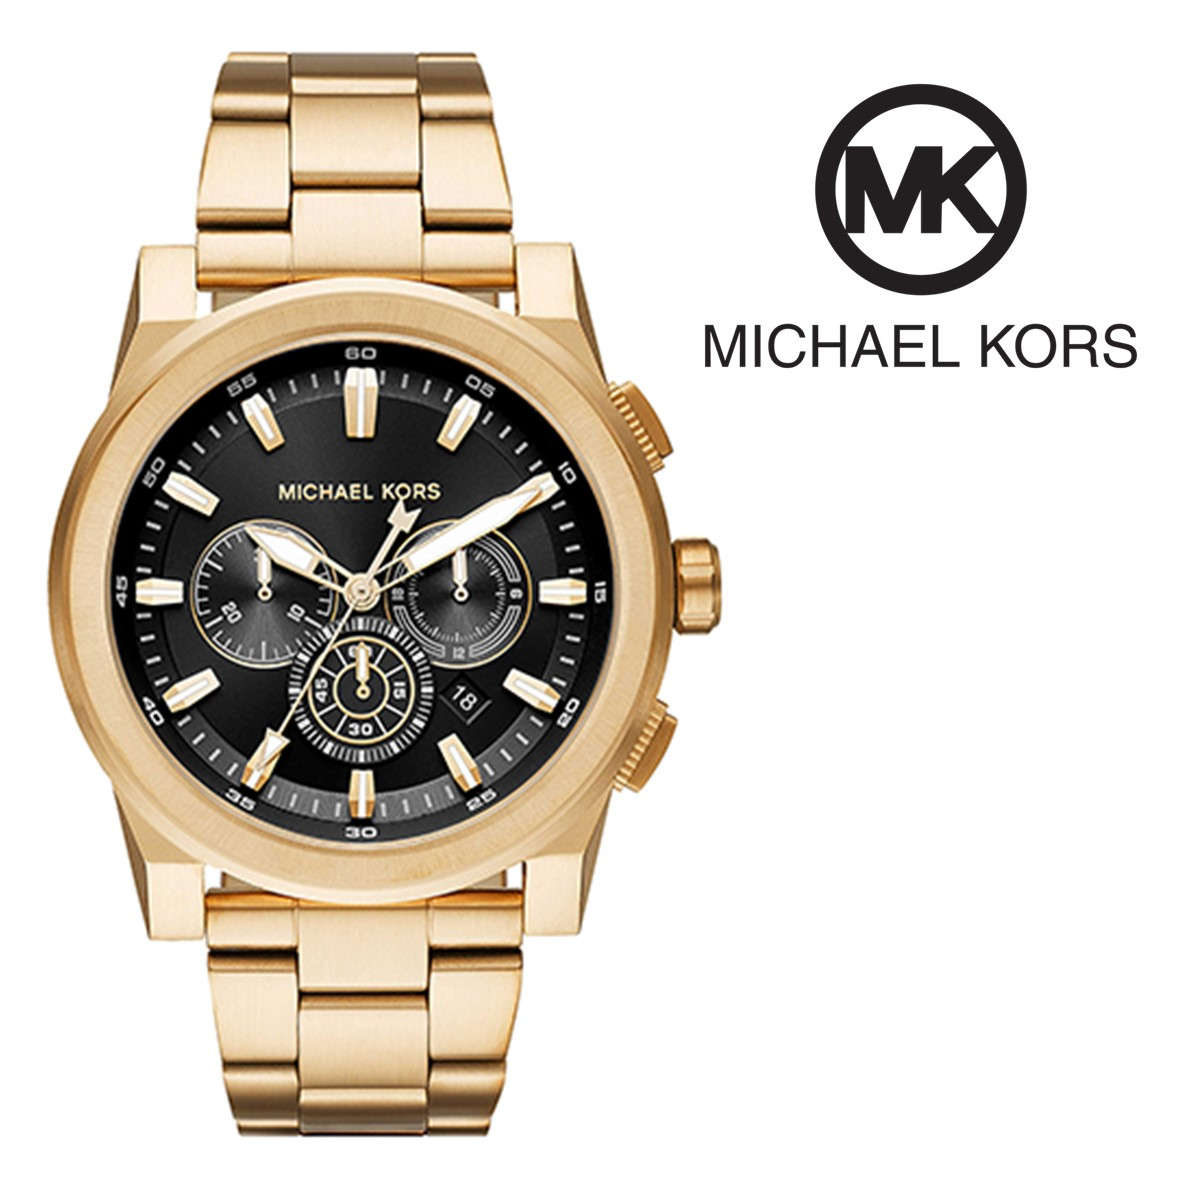 7ce93375b Relógio Michael Kors® MK8599 - You Like It